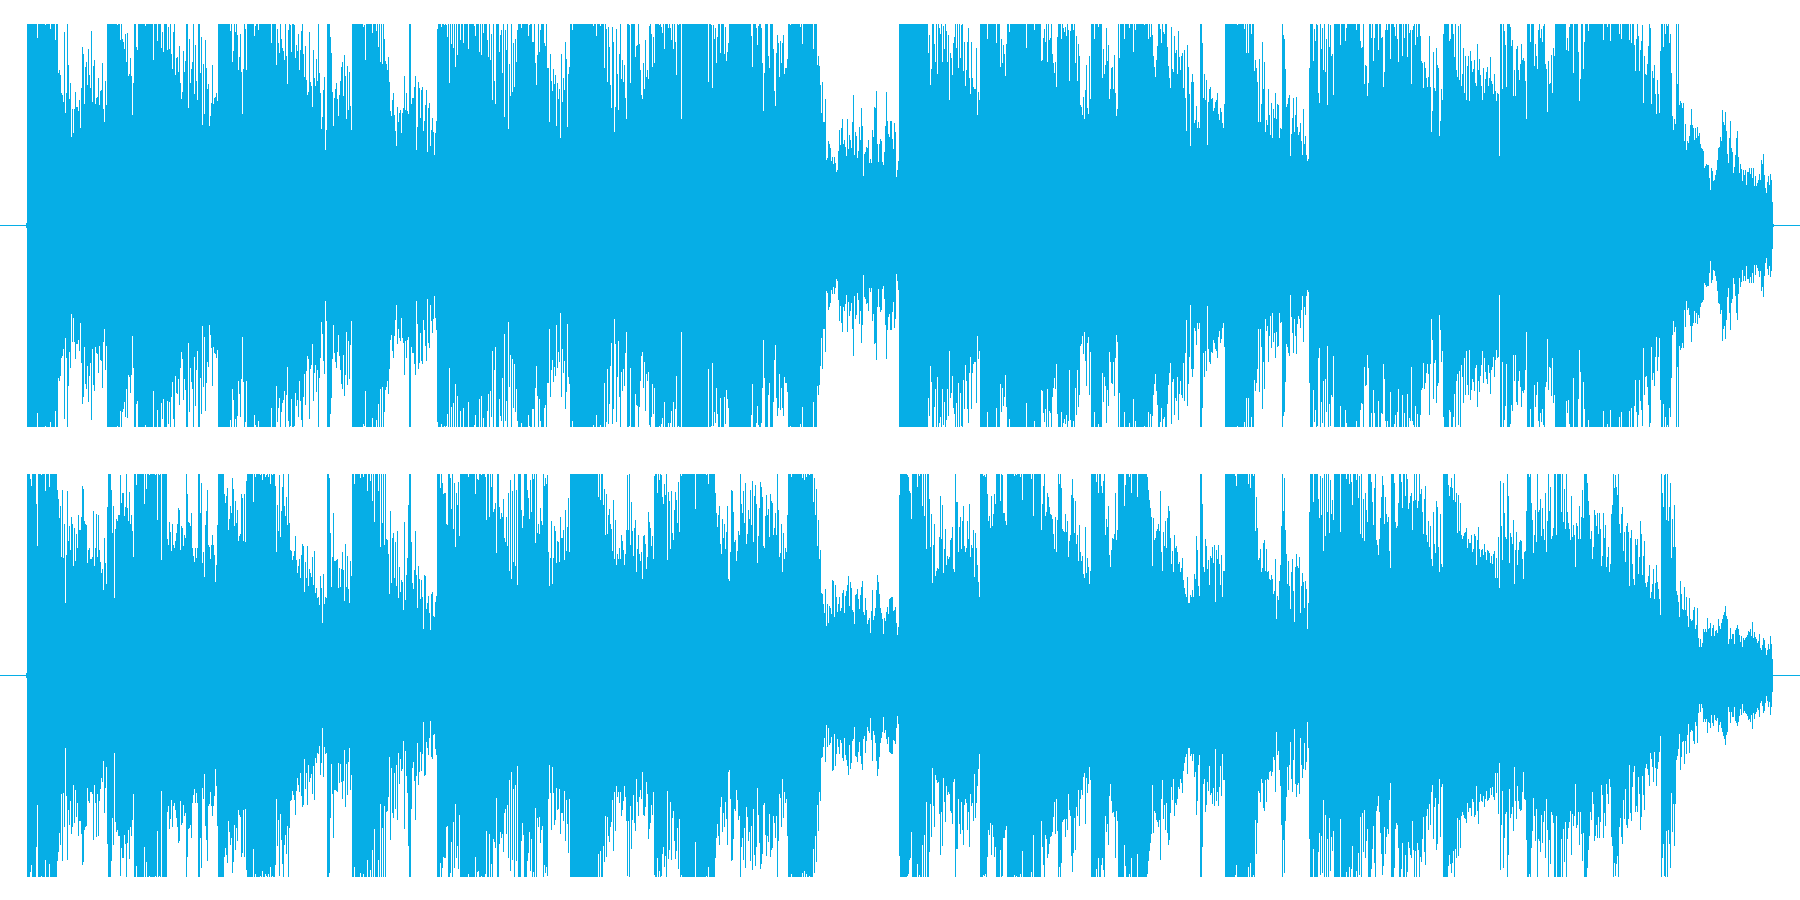 Impression difference ver./Refreshing cute jingle's reproduced waveform